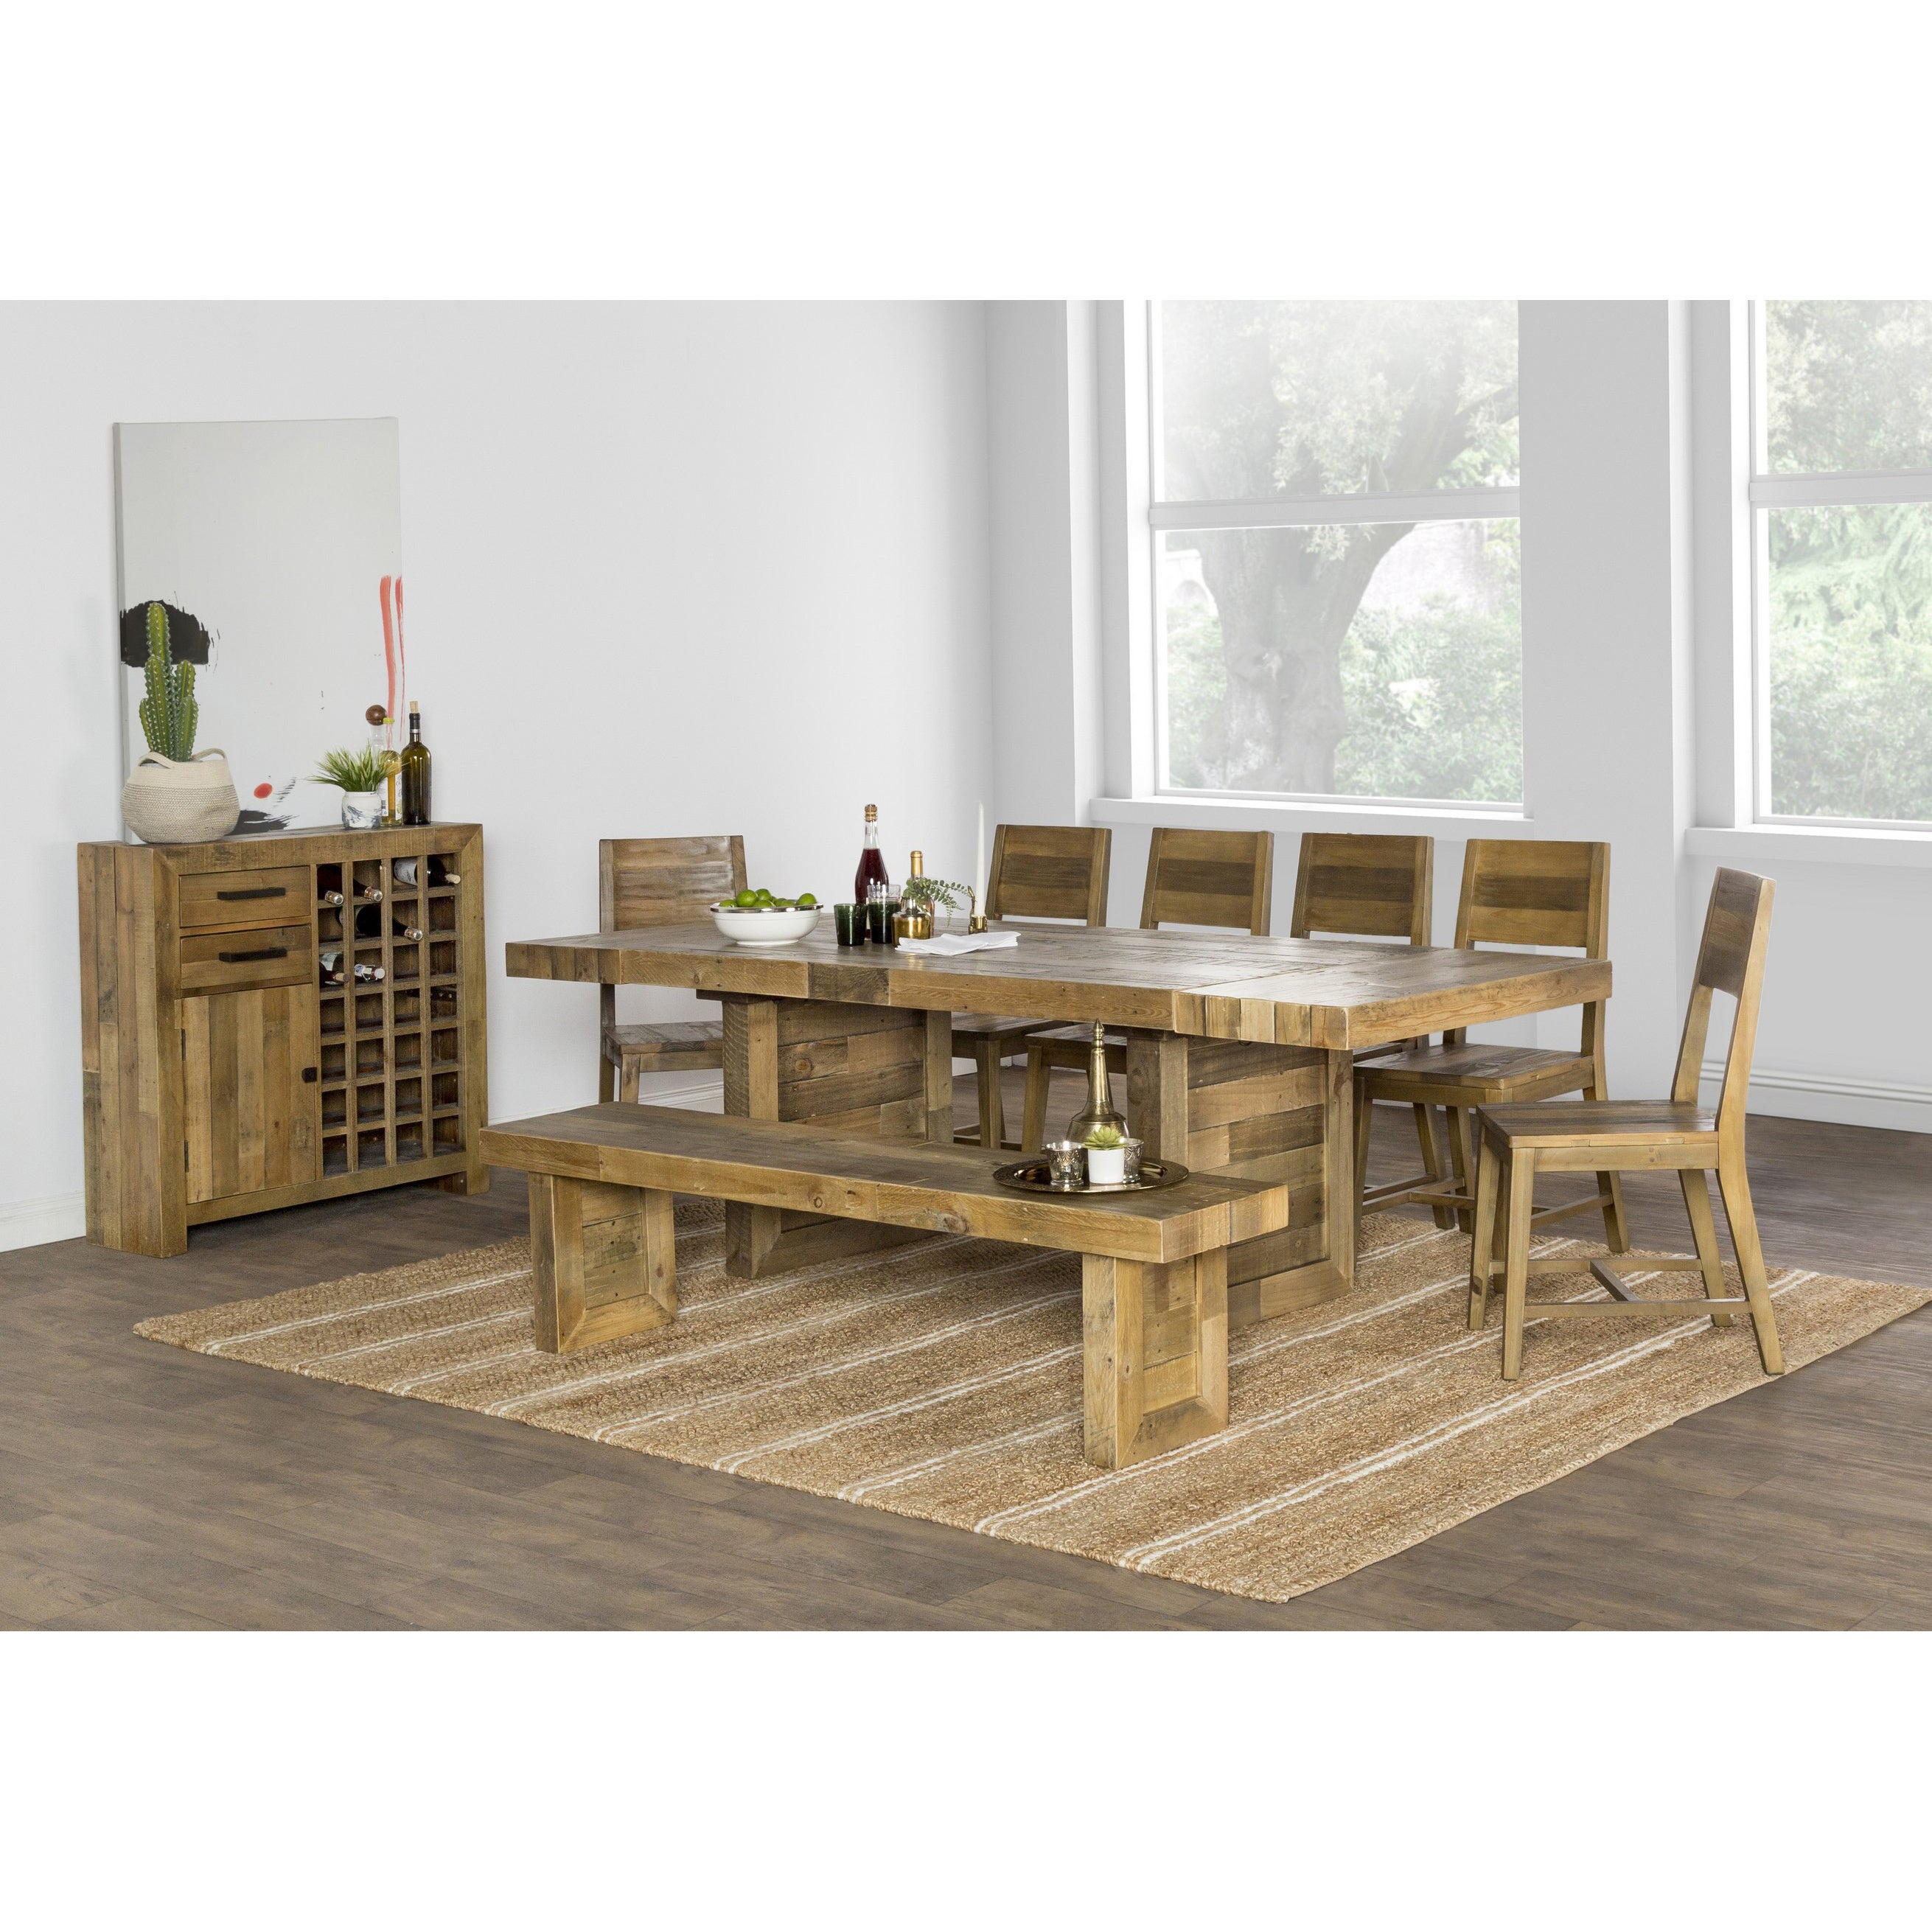 The Gray Barn Fairview Reclaimed Wood Extending Dining Table